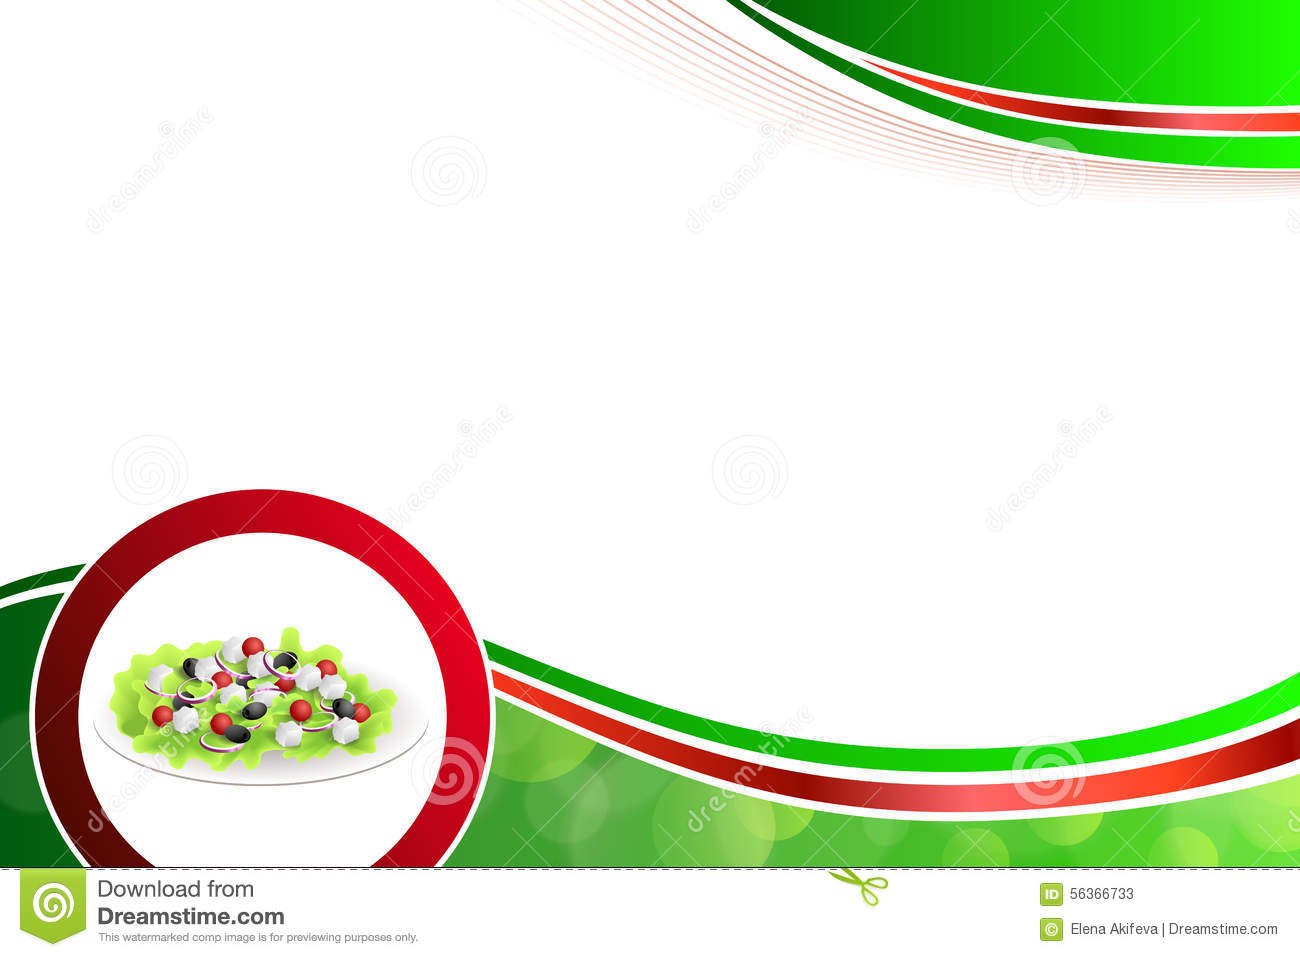 Red Onion Illustration black olives onion red